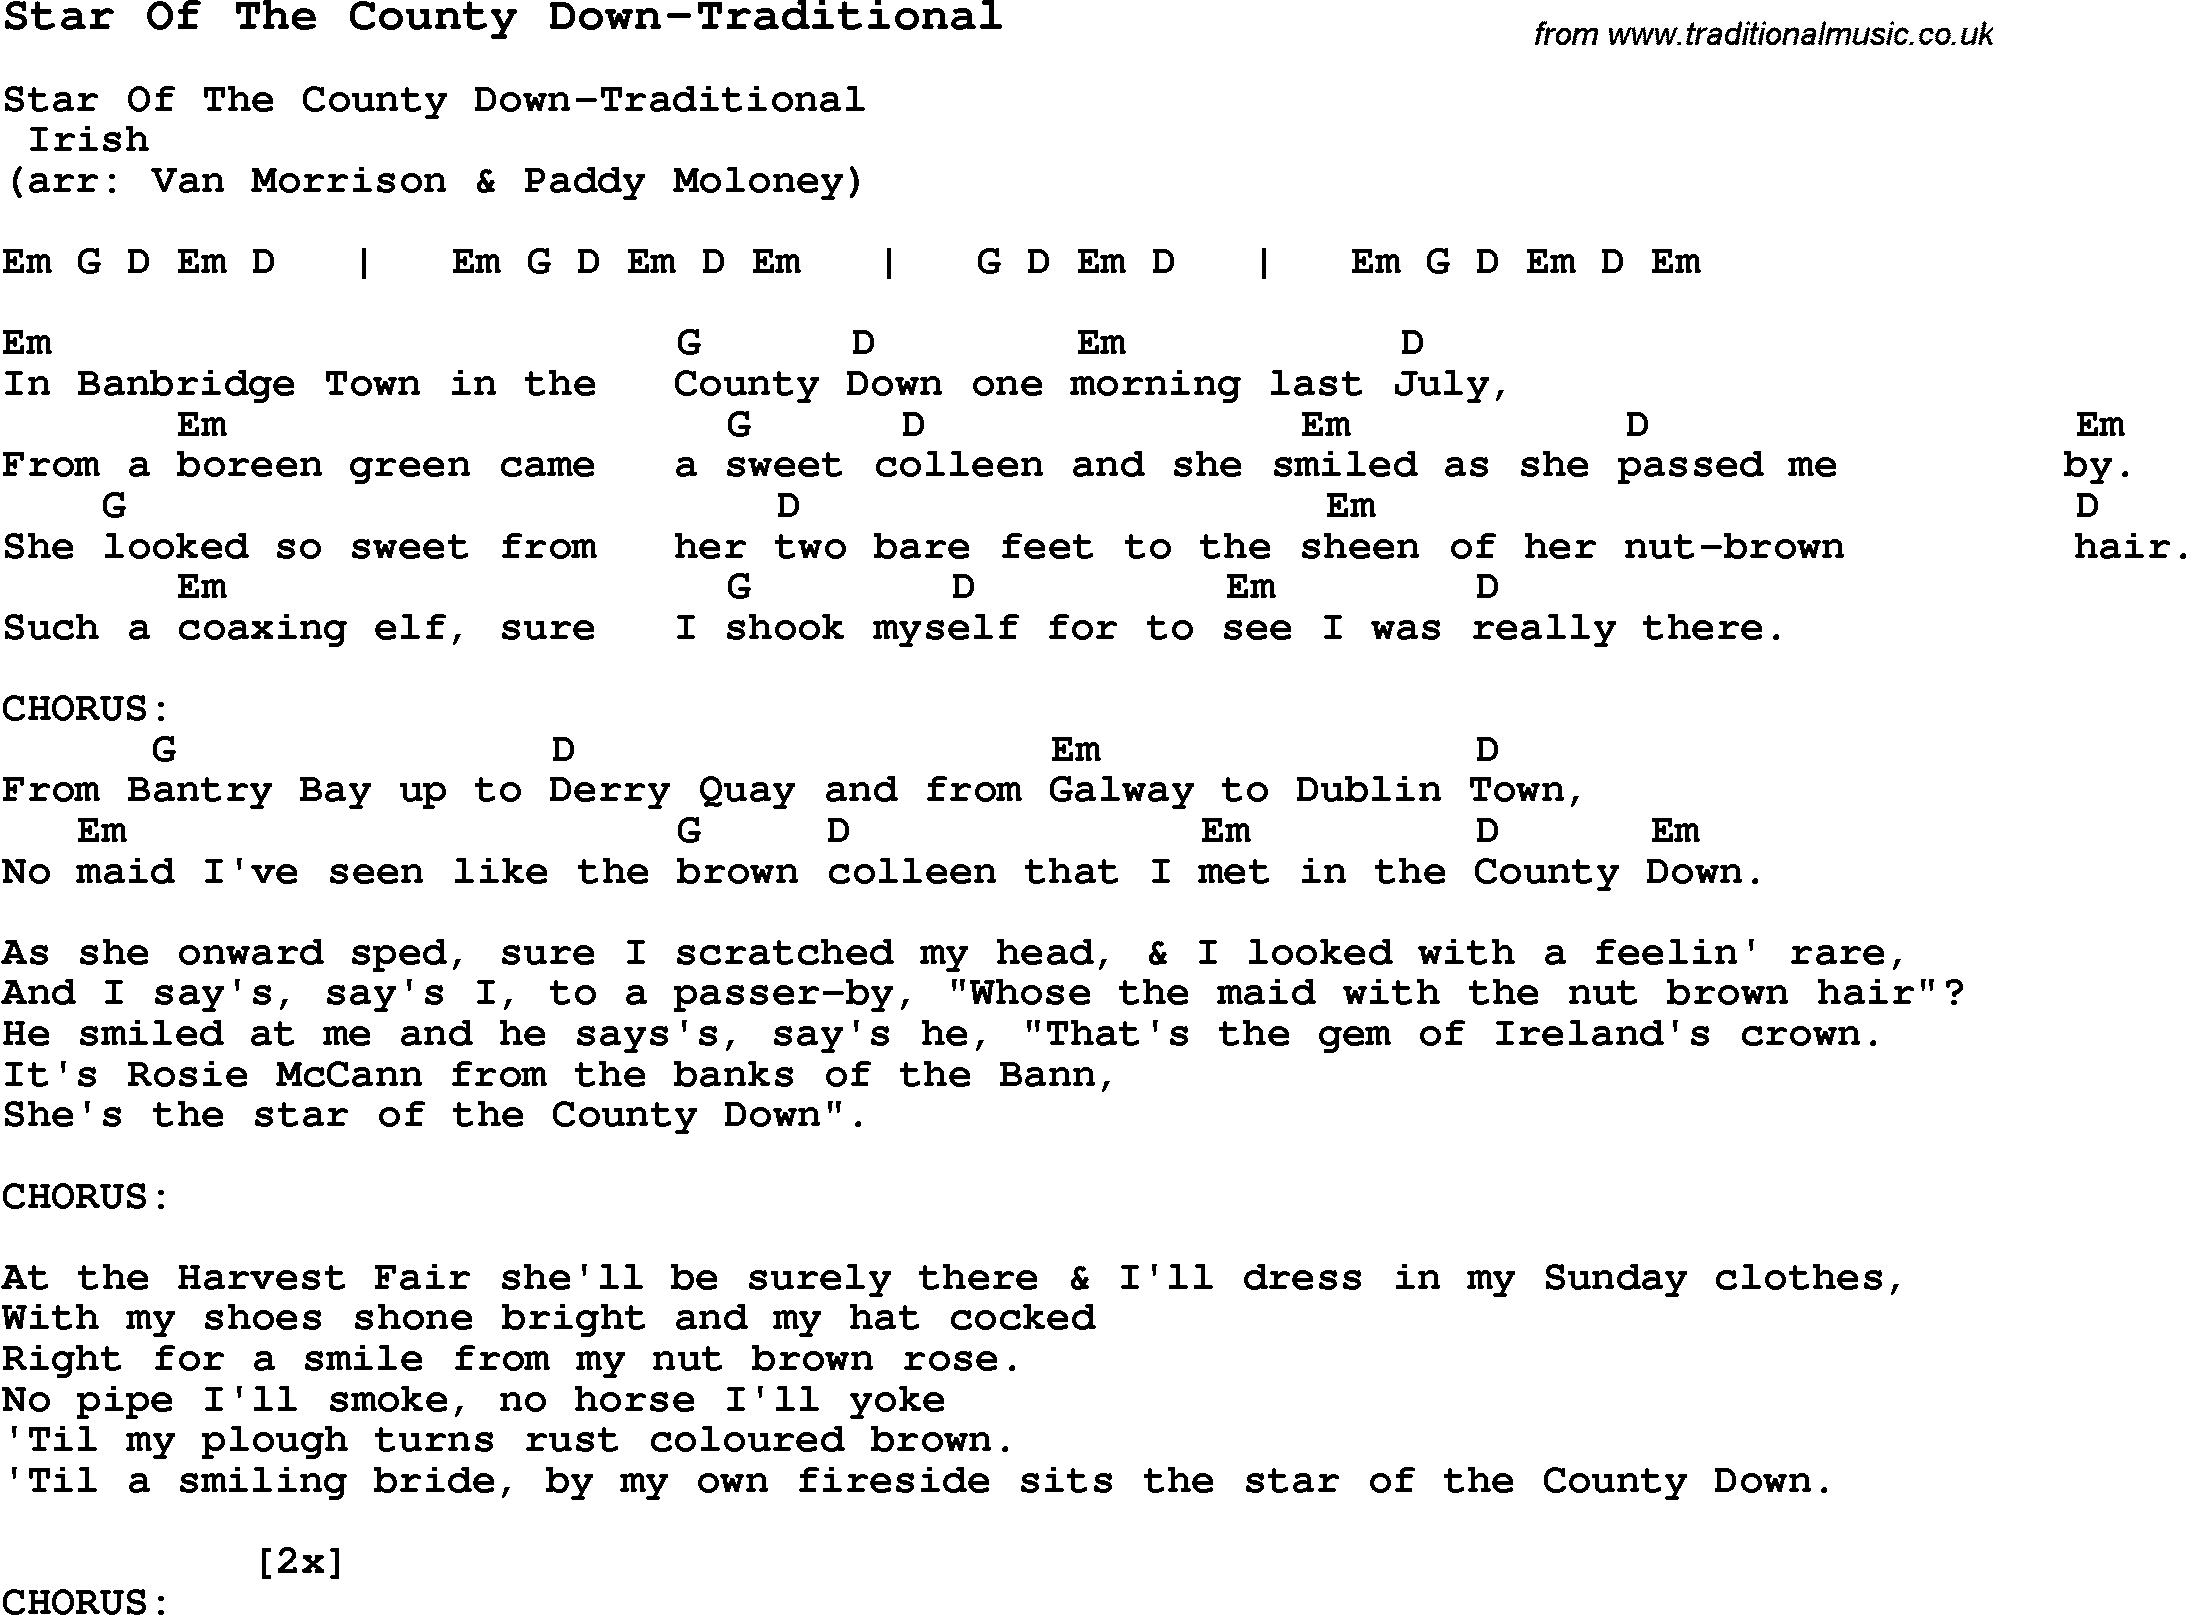 Summer Camp Song Star Of The County Down Traditional With Lyrics